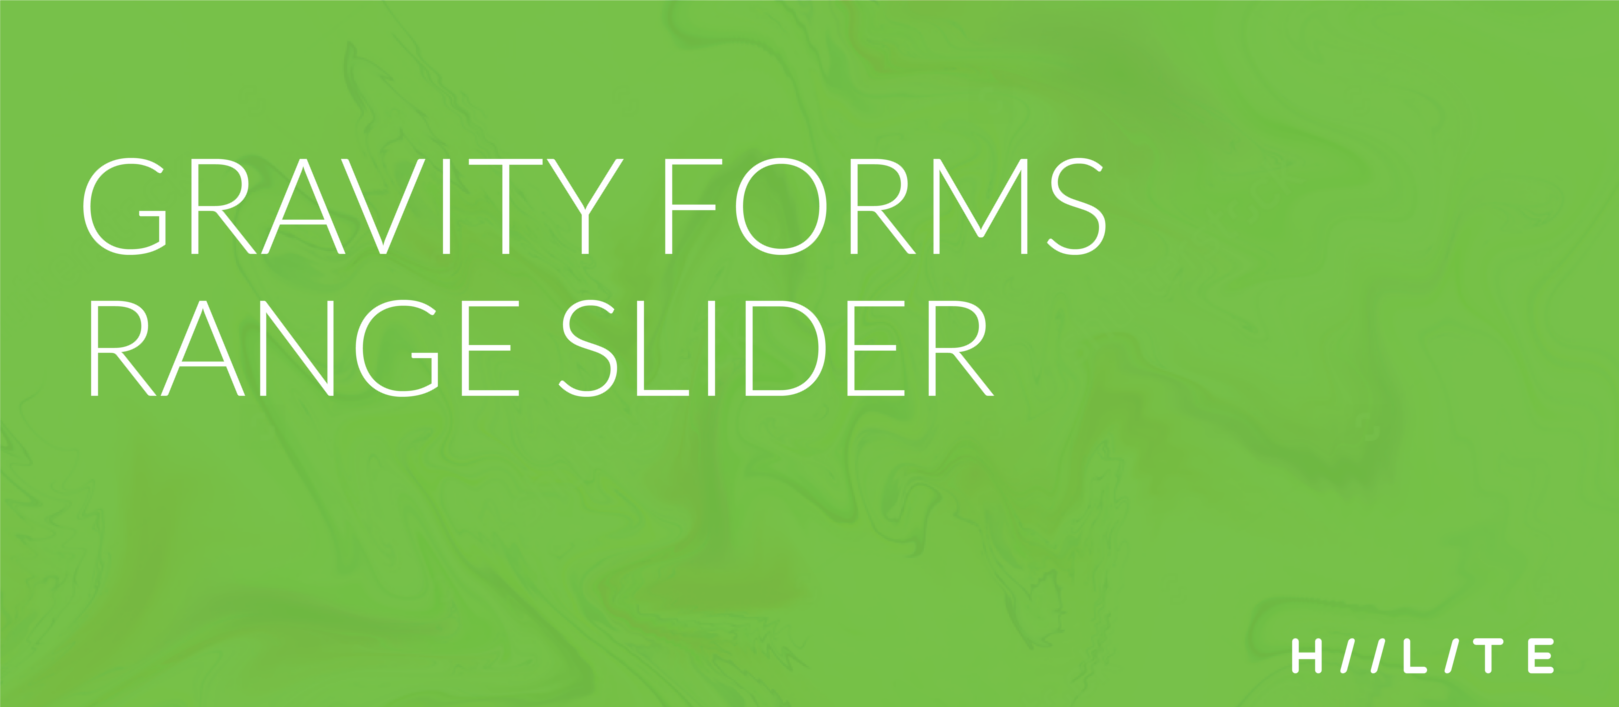 Gravity Forms Range Slider - 1